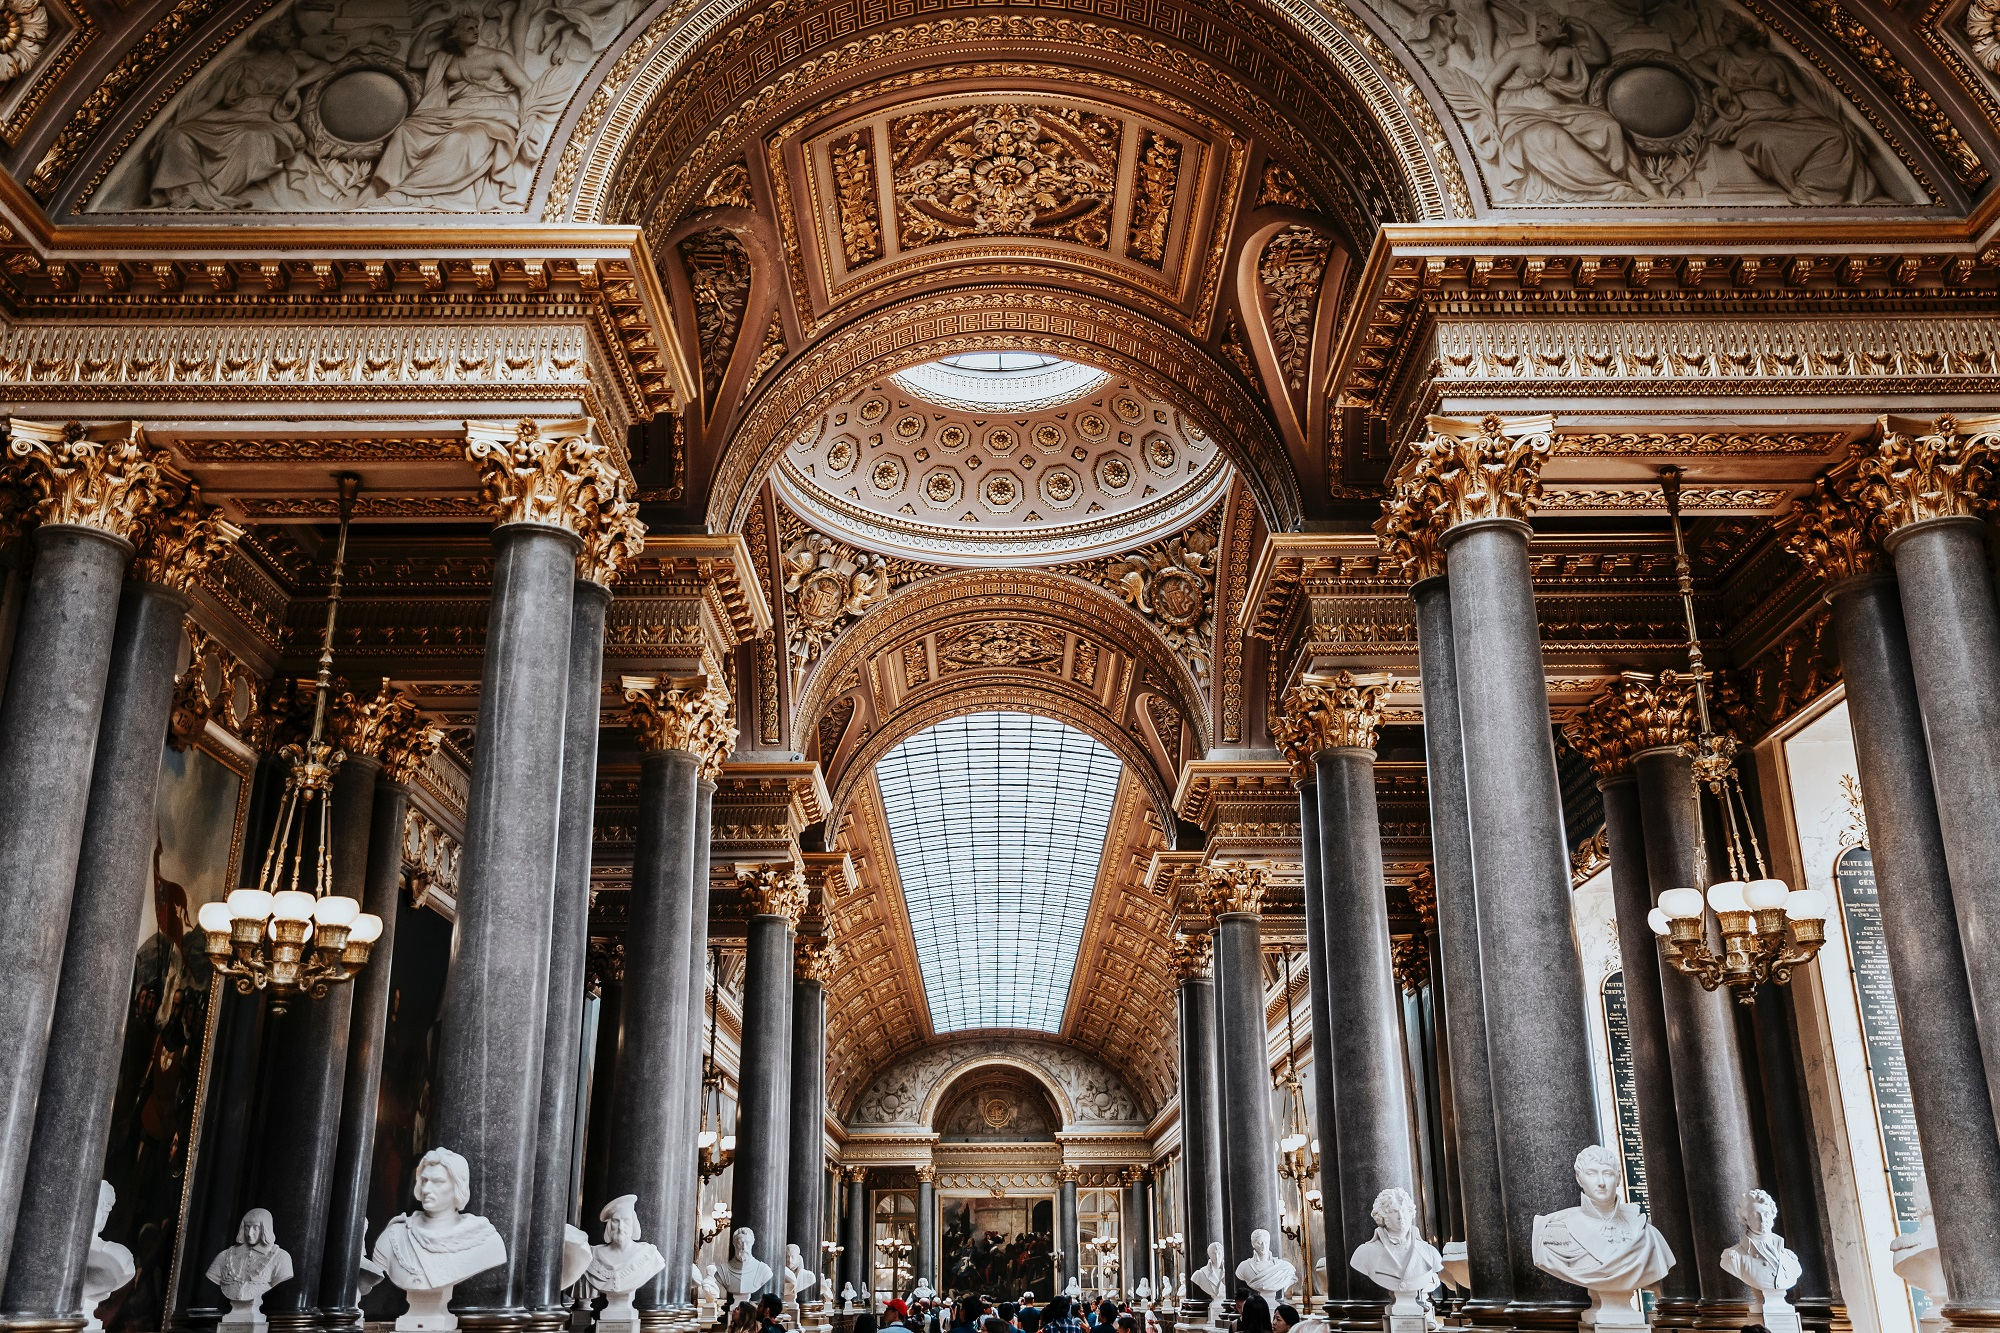 Where to see the best art in Rome?